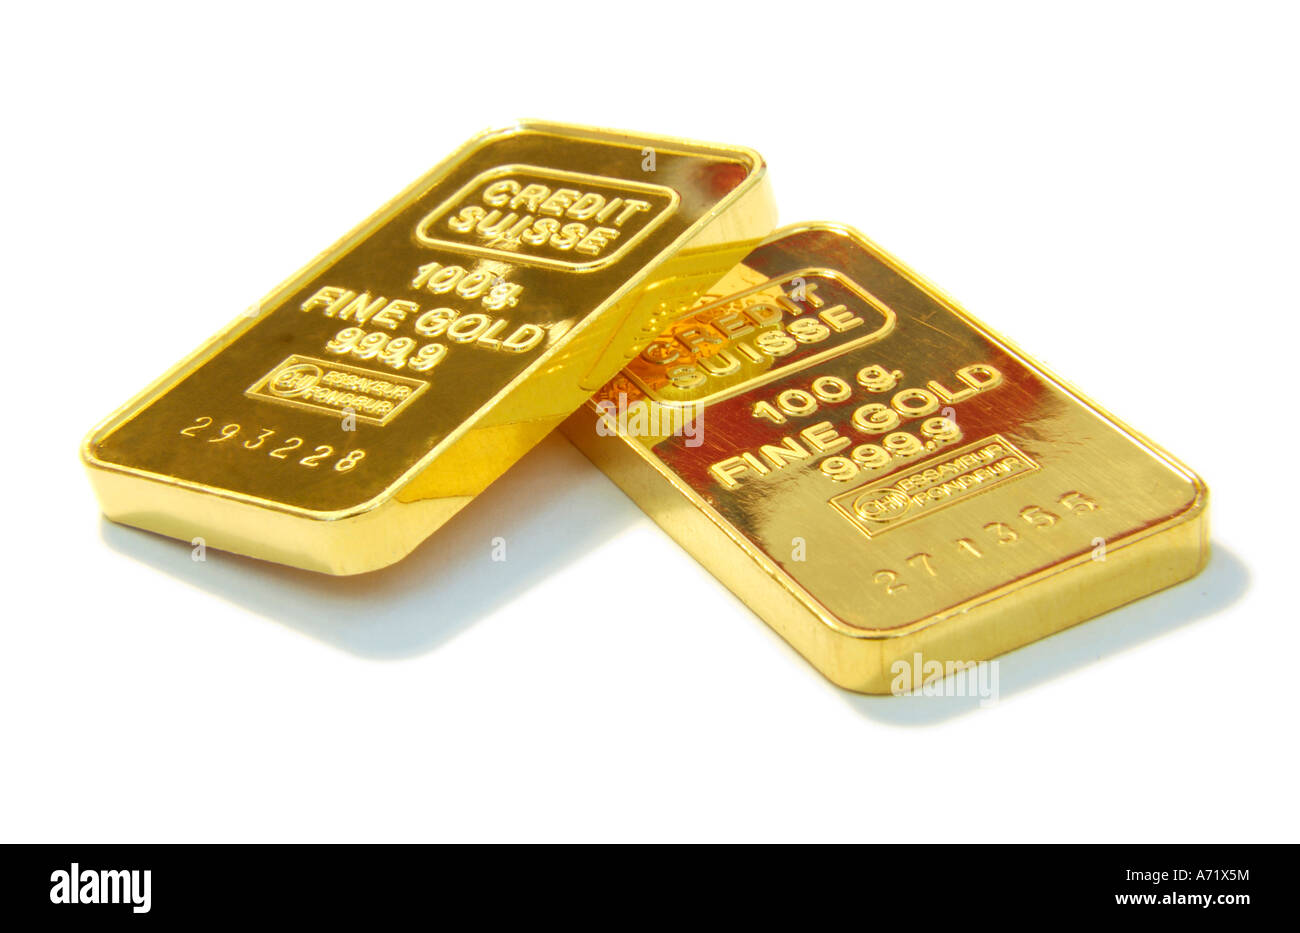 Close up of two 100 grams heavy solid gold bars from Swiss company Credit Suisse - Stock Image